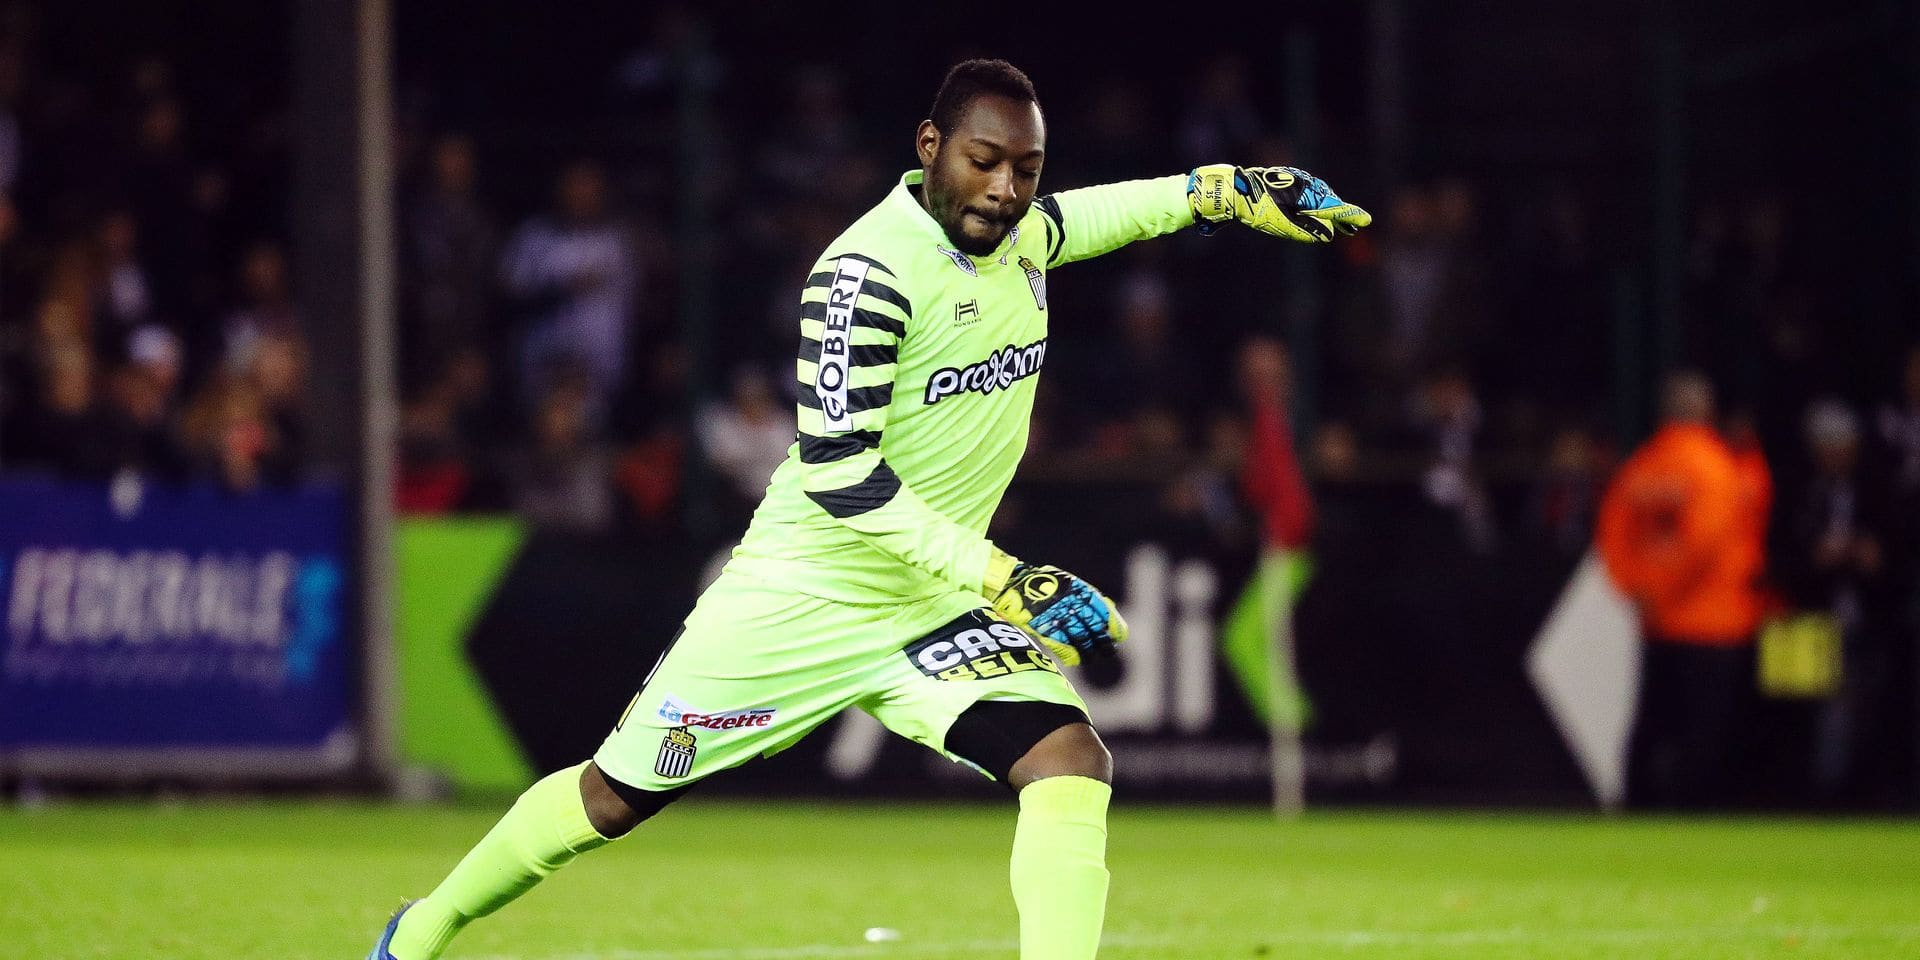 Charleroi's goalkeeper Parfait Mandanda pictured in action during a Croky Cup 1/8 final game between Royal Excel Mouscron and Sporting Charleroi, in Mouscron, Tuesday 28 November 2017. BELGA PHOTO VIRGINIE LEFOUR